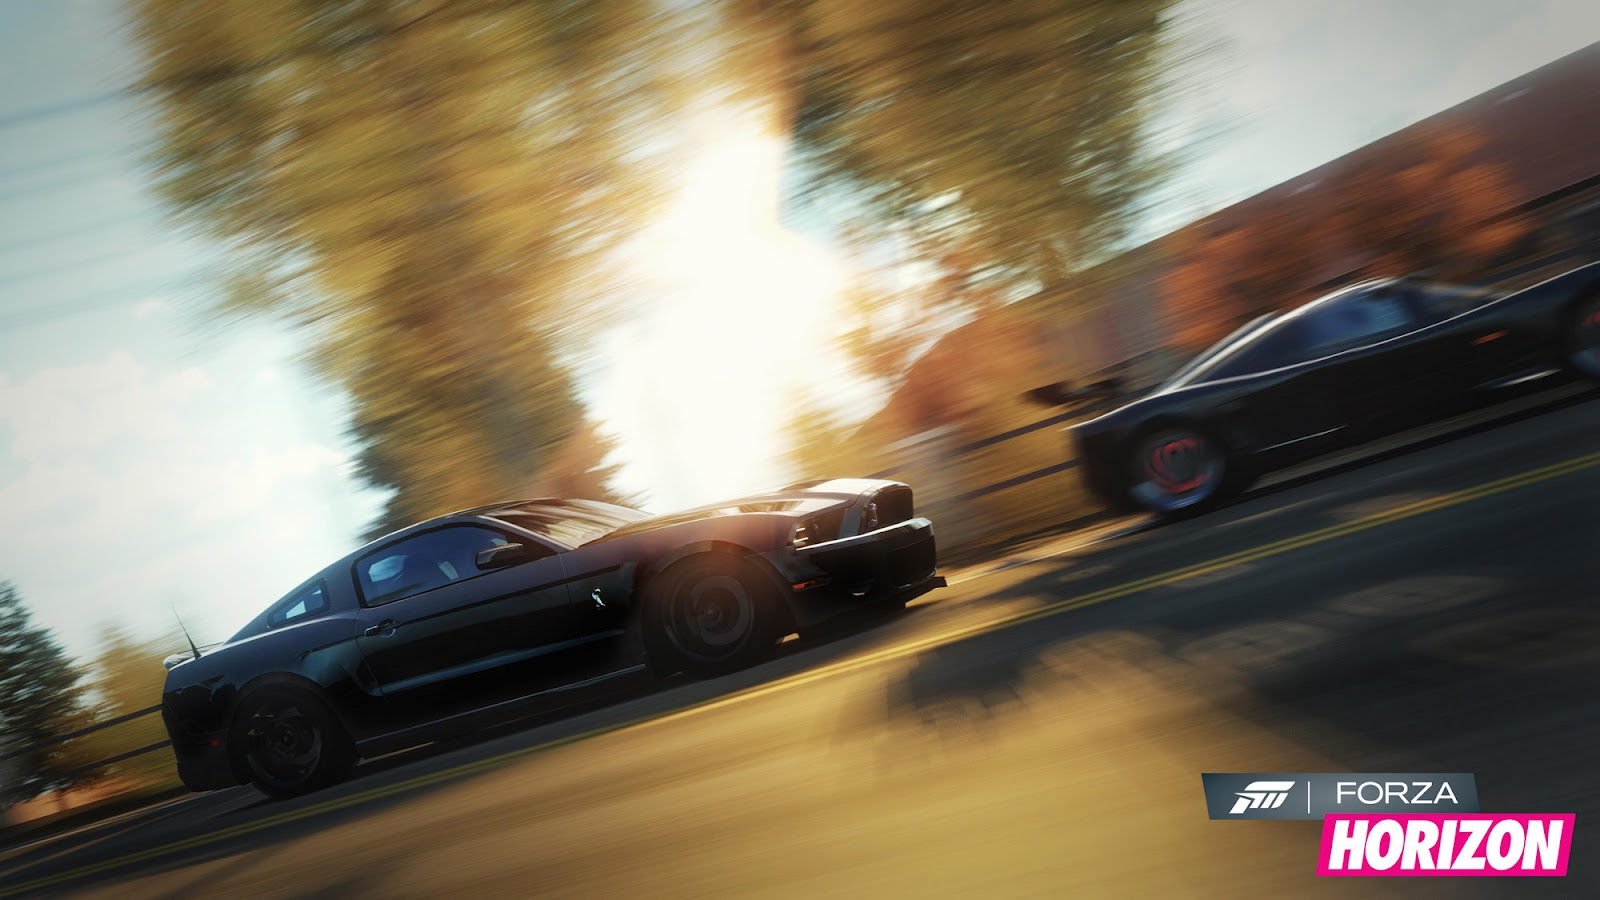 Forza Horizon HD & Widescreen Wallpaper 0.601143103841249